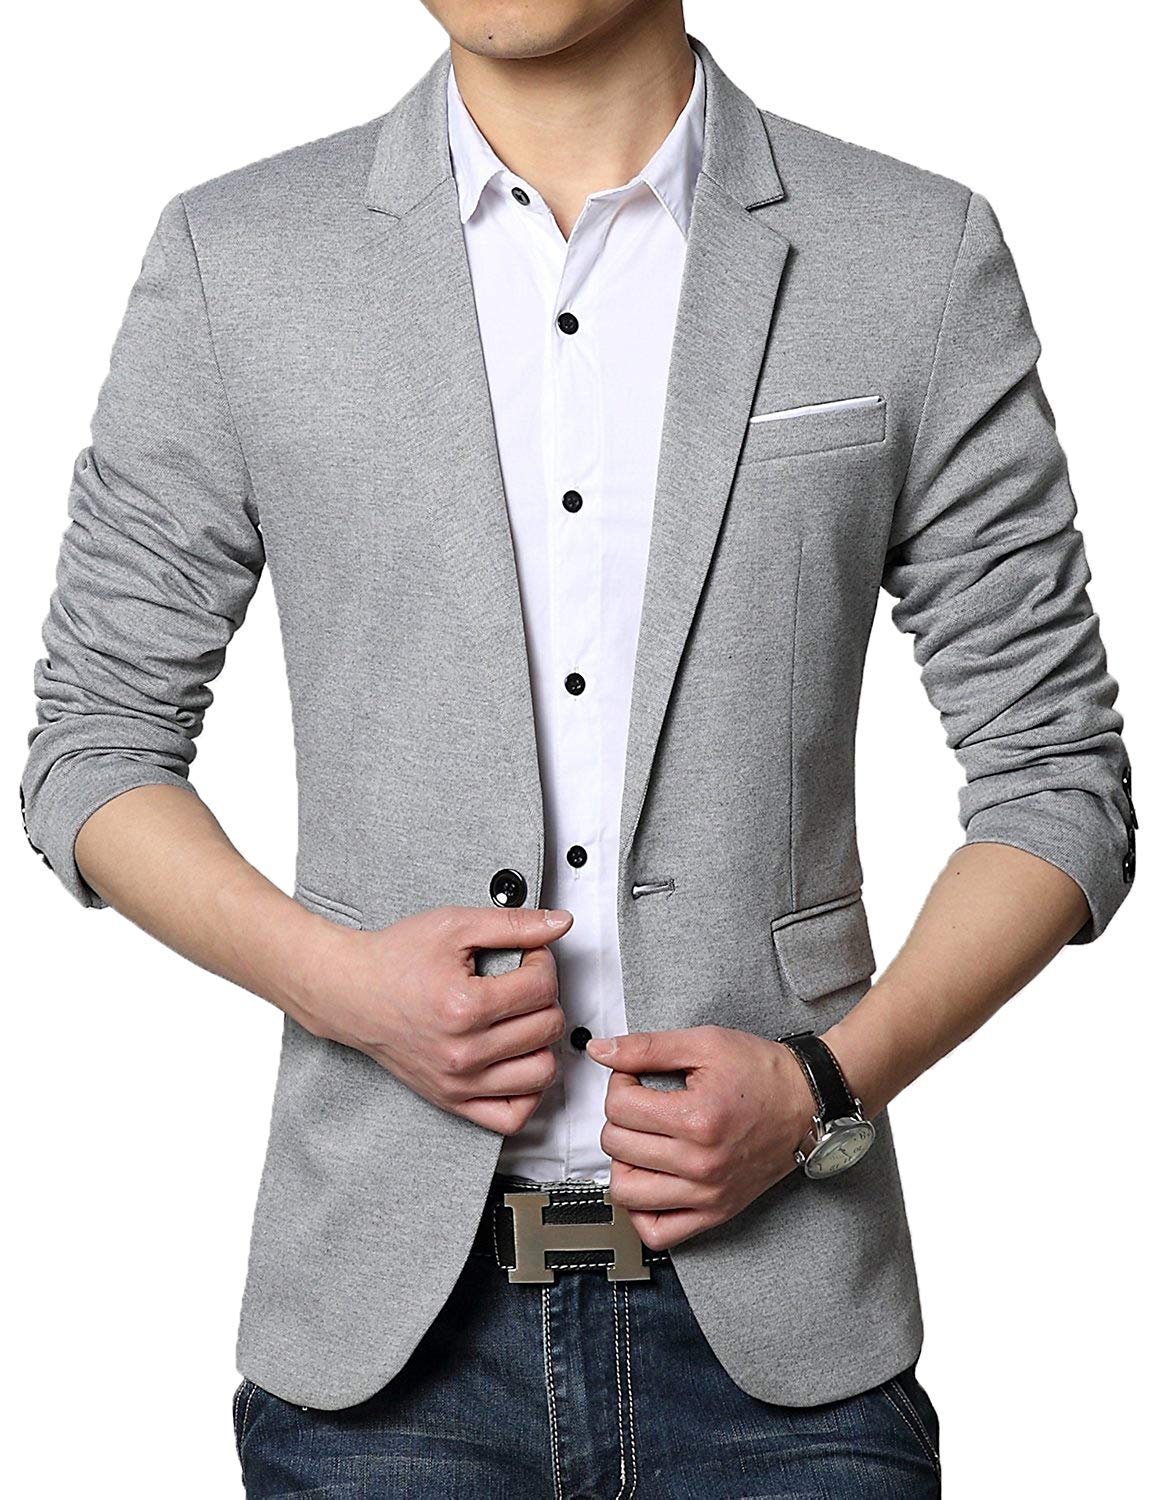 DAVID.ANN Men's Slim Fit Casual One Button Blazer Jacket